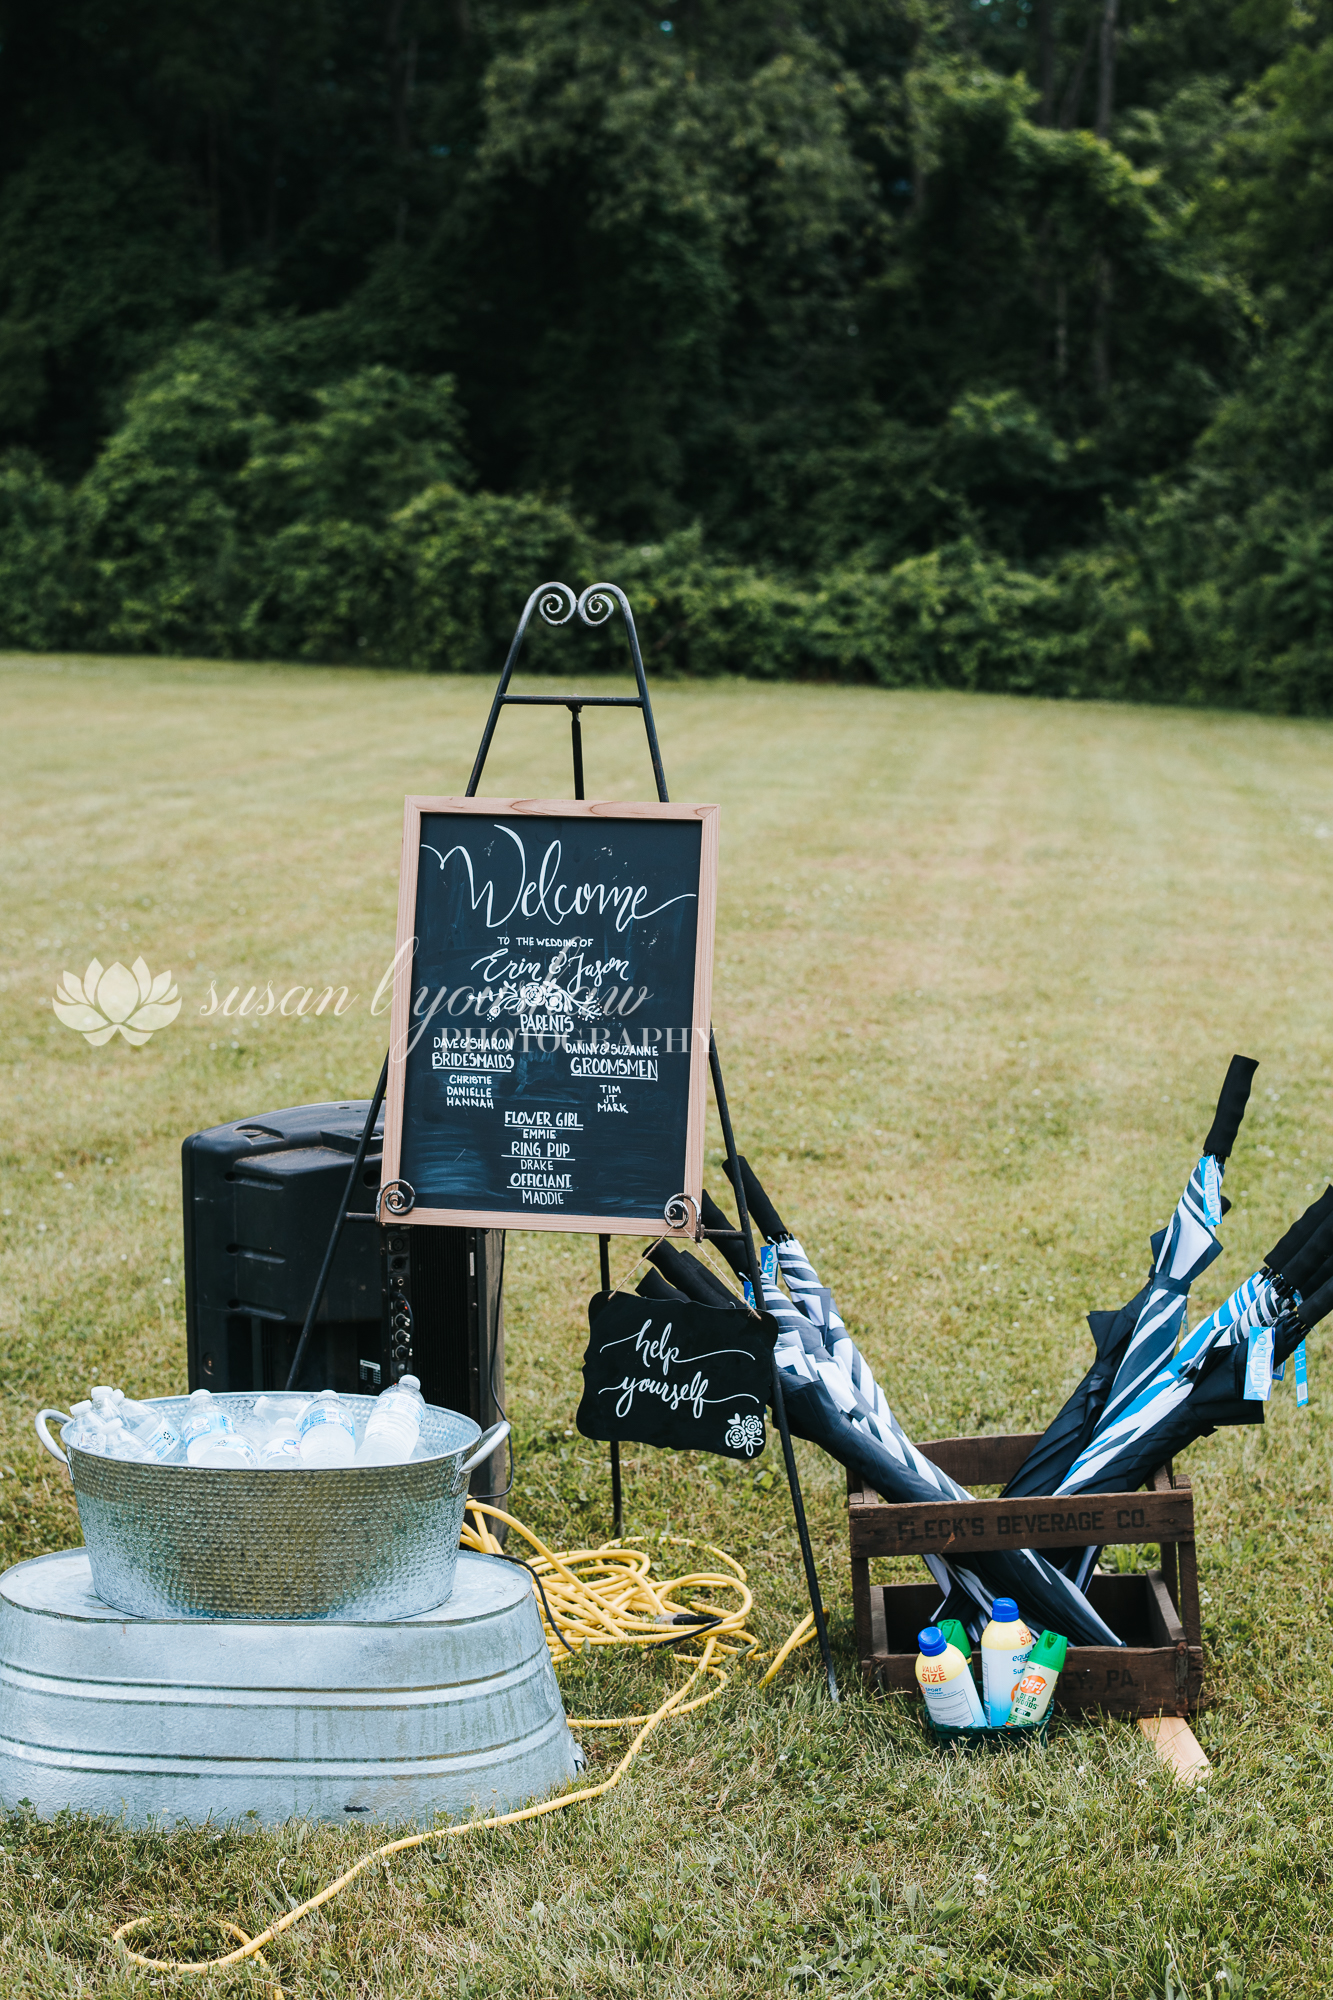 Erin and Jason Wedding Photos 07-06-2019 SLY Photography-65.jpg